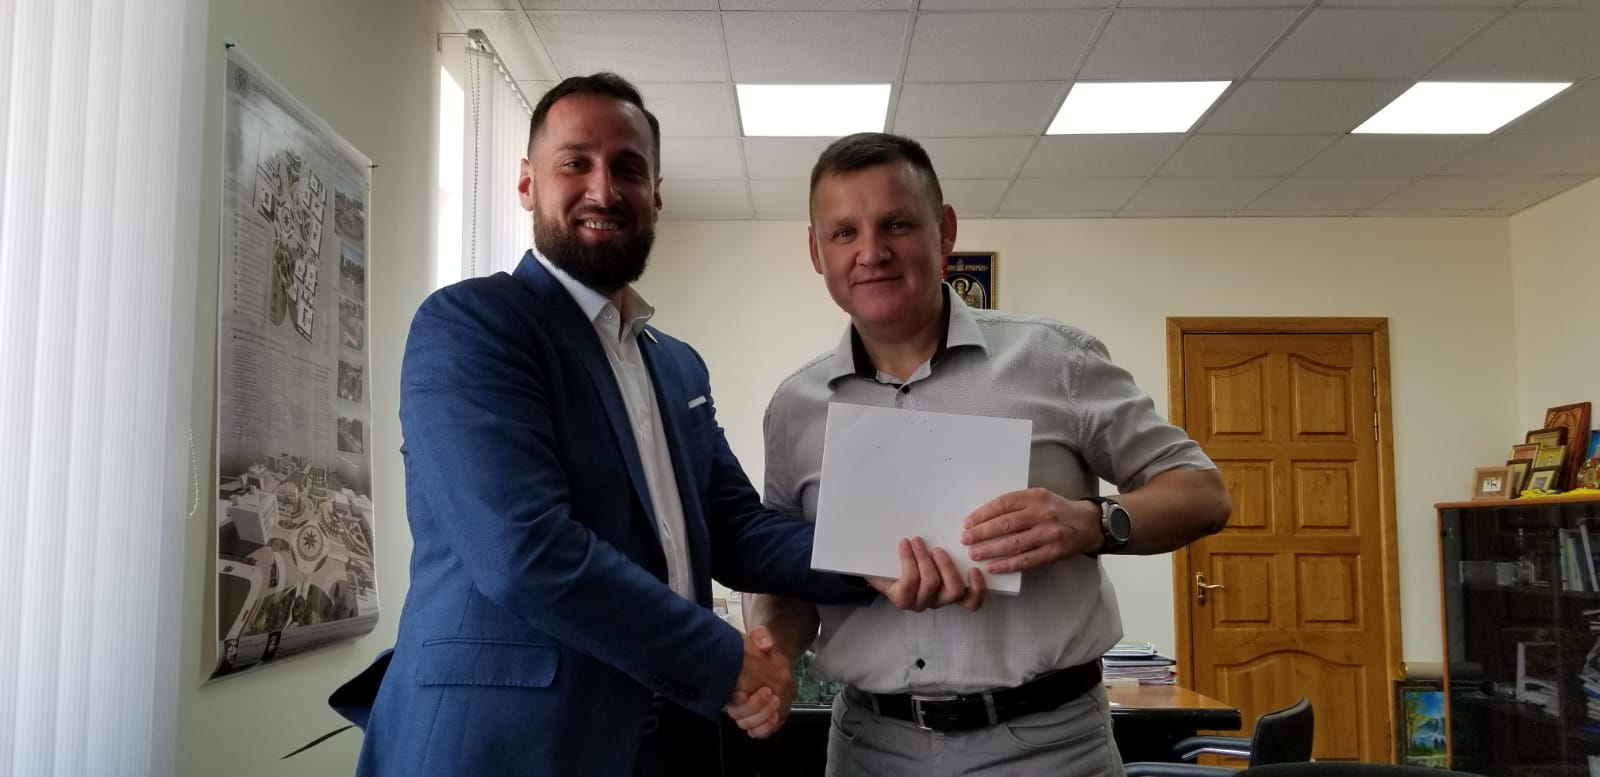 Mayor of Slavutych (Town created for Chernobyl survivors), With Lucas Hixon, a Fan of the Book